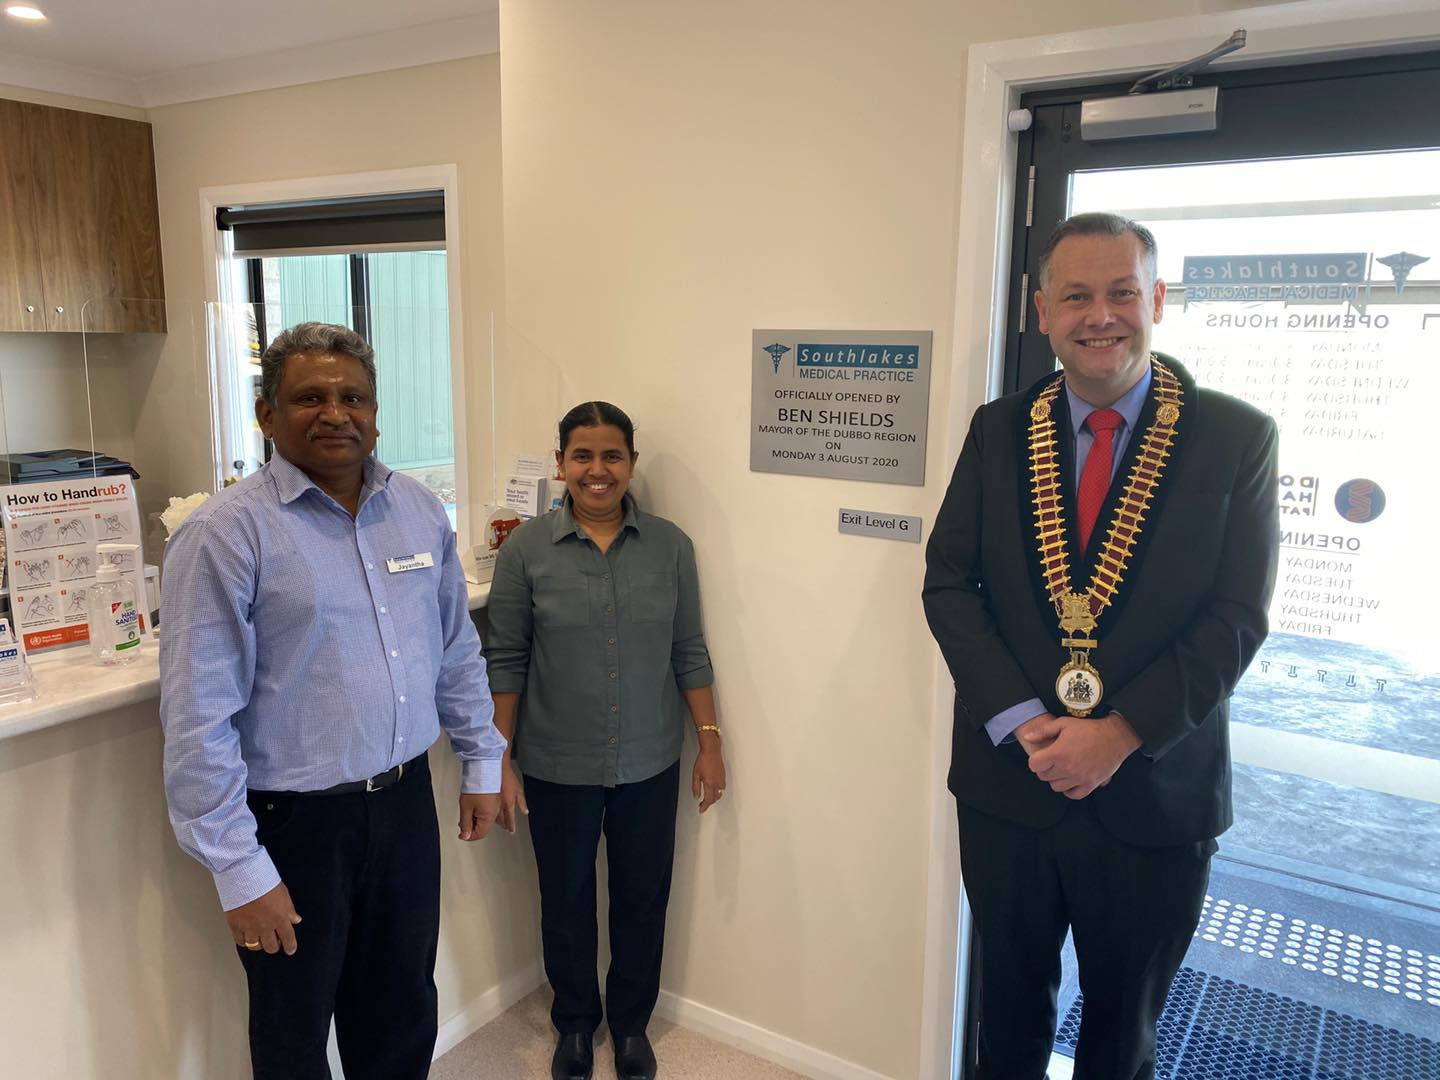 South Lakes Medical Practice opened by Mayor Ben Shields